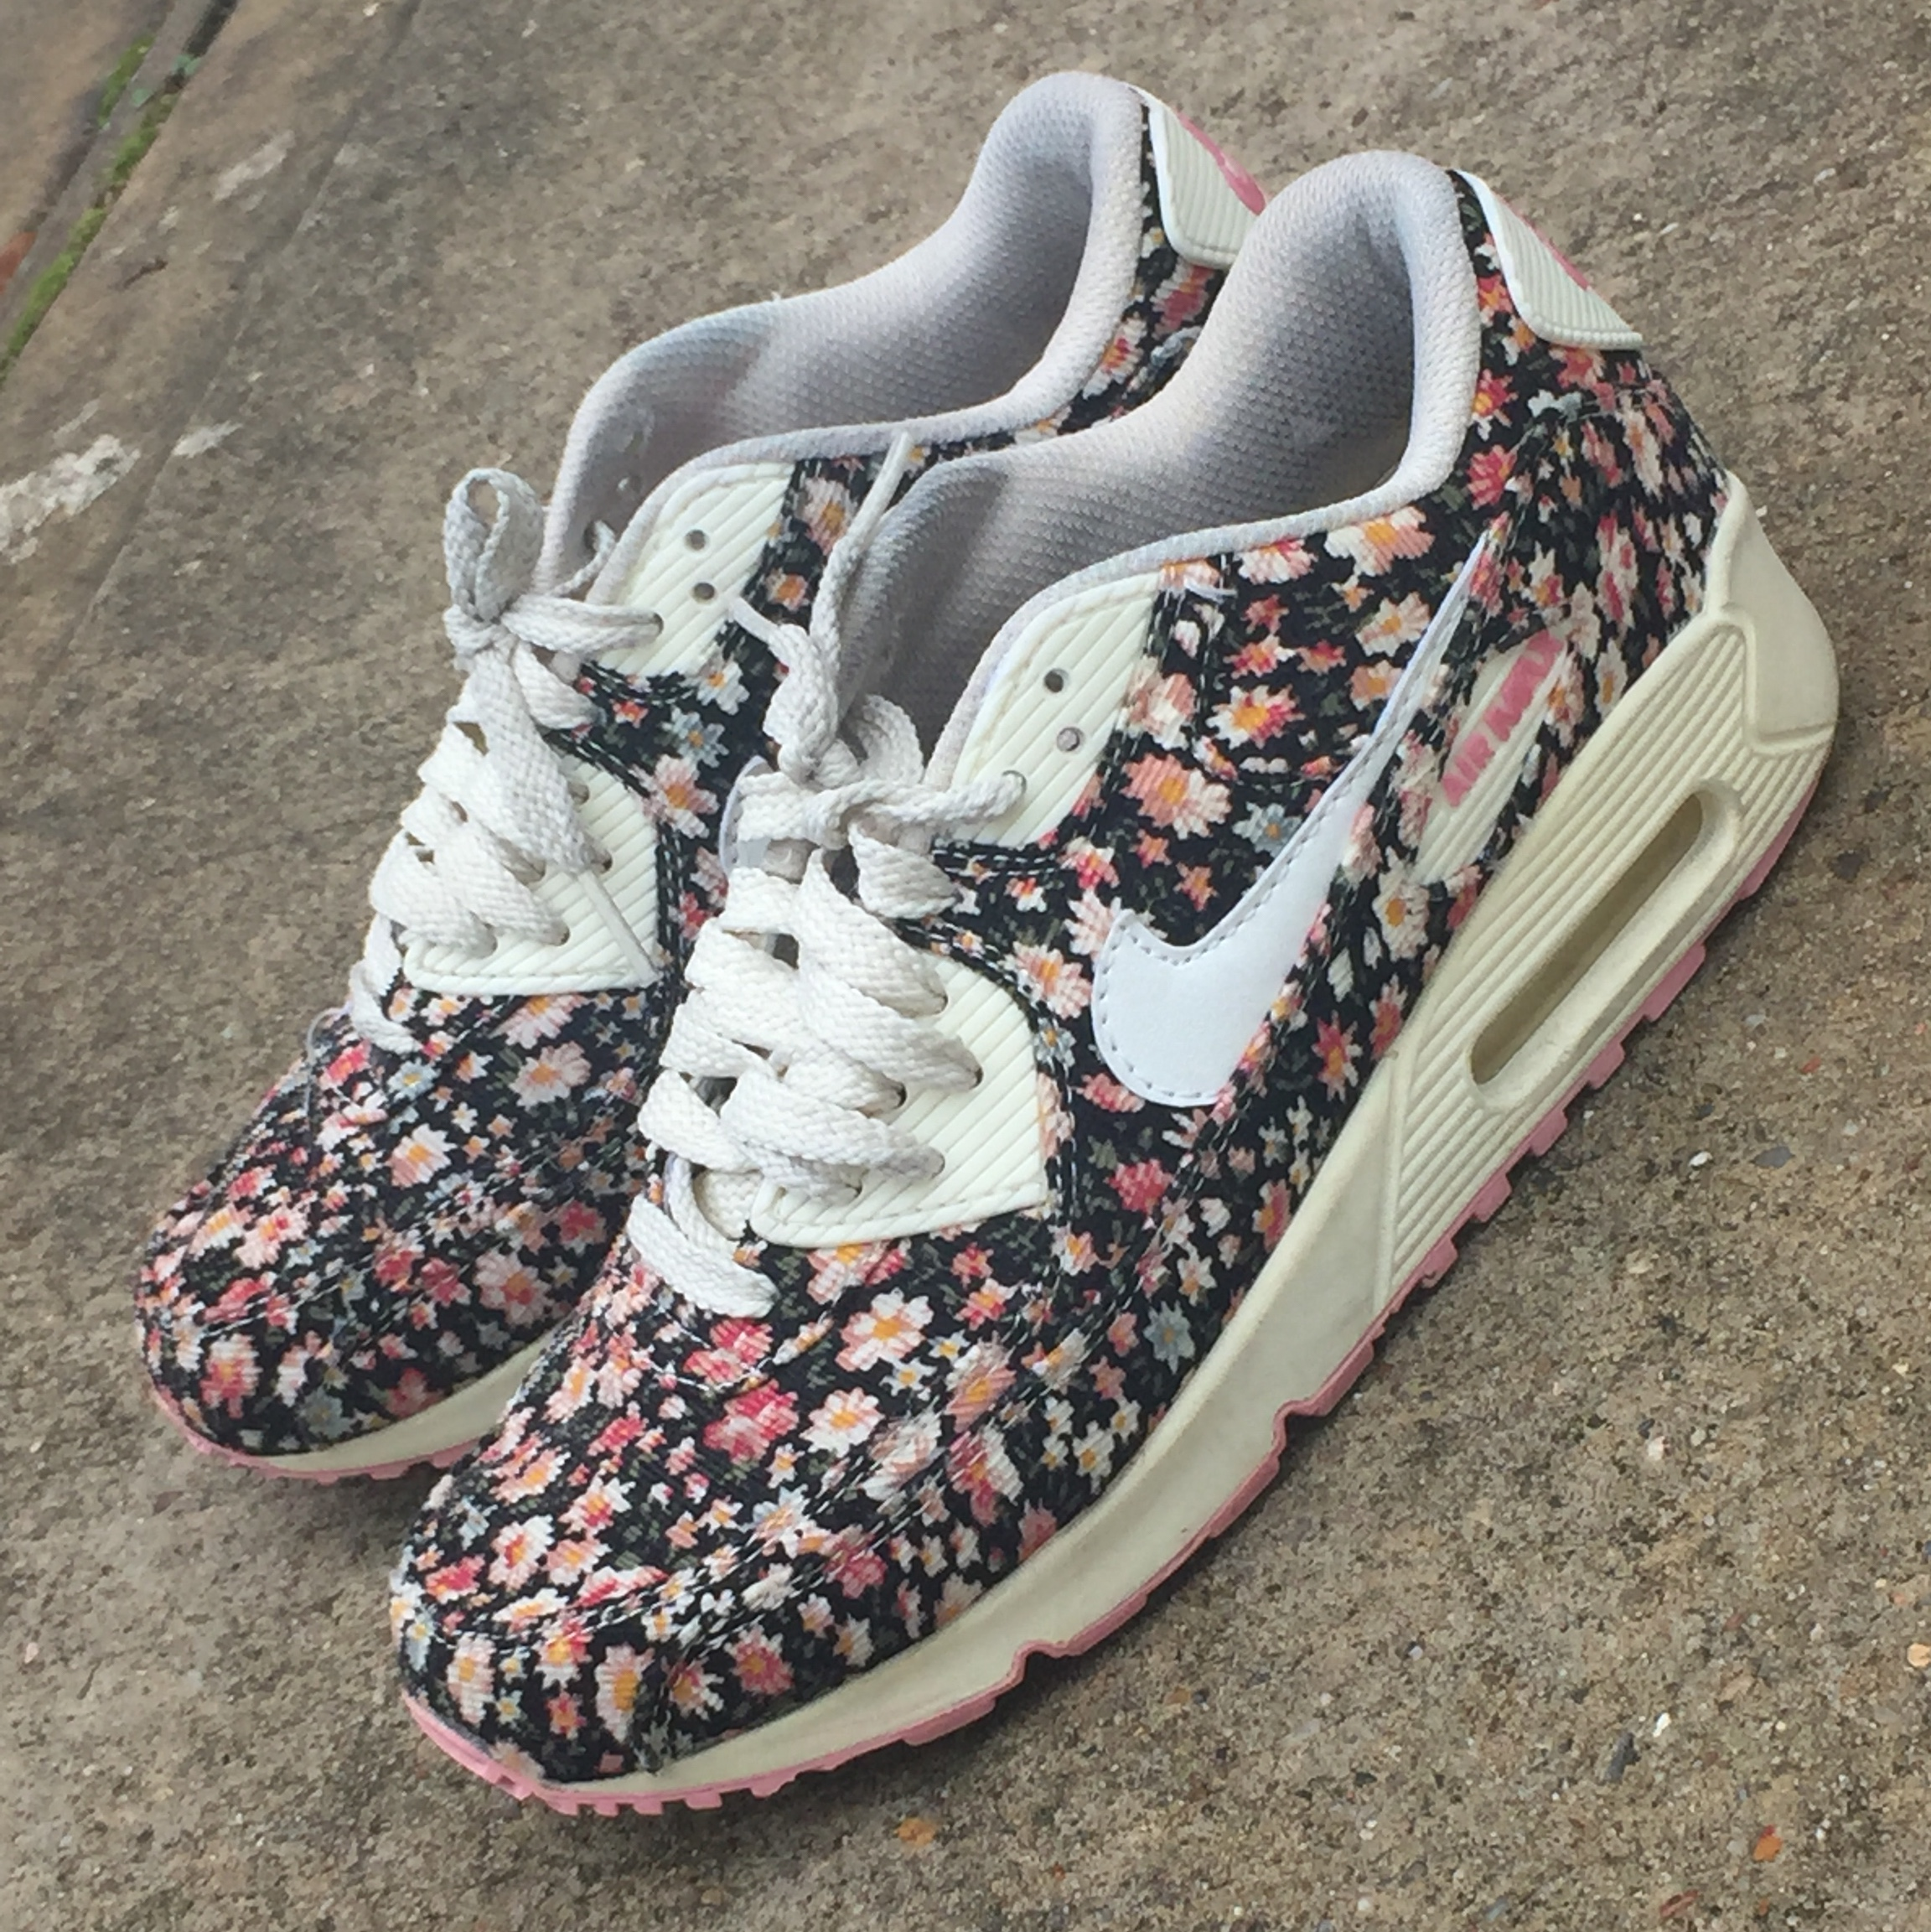 nike air max floral limited edition